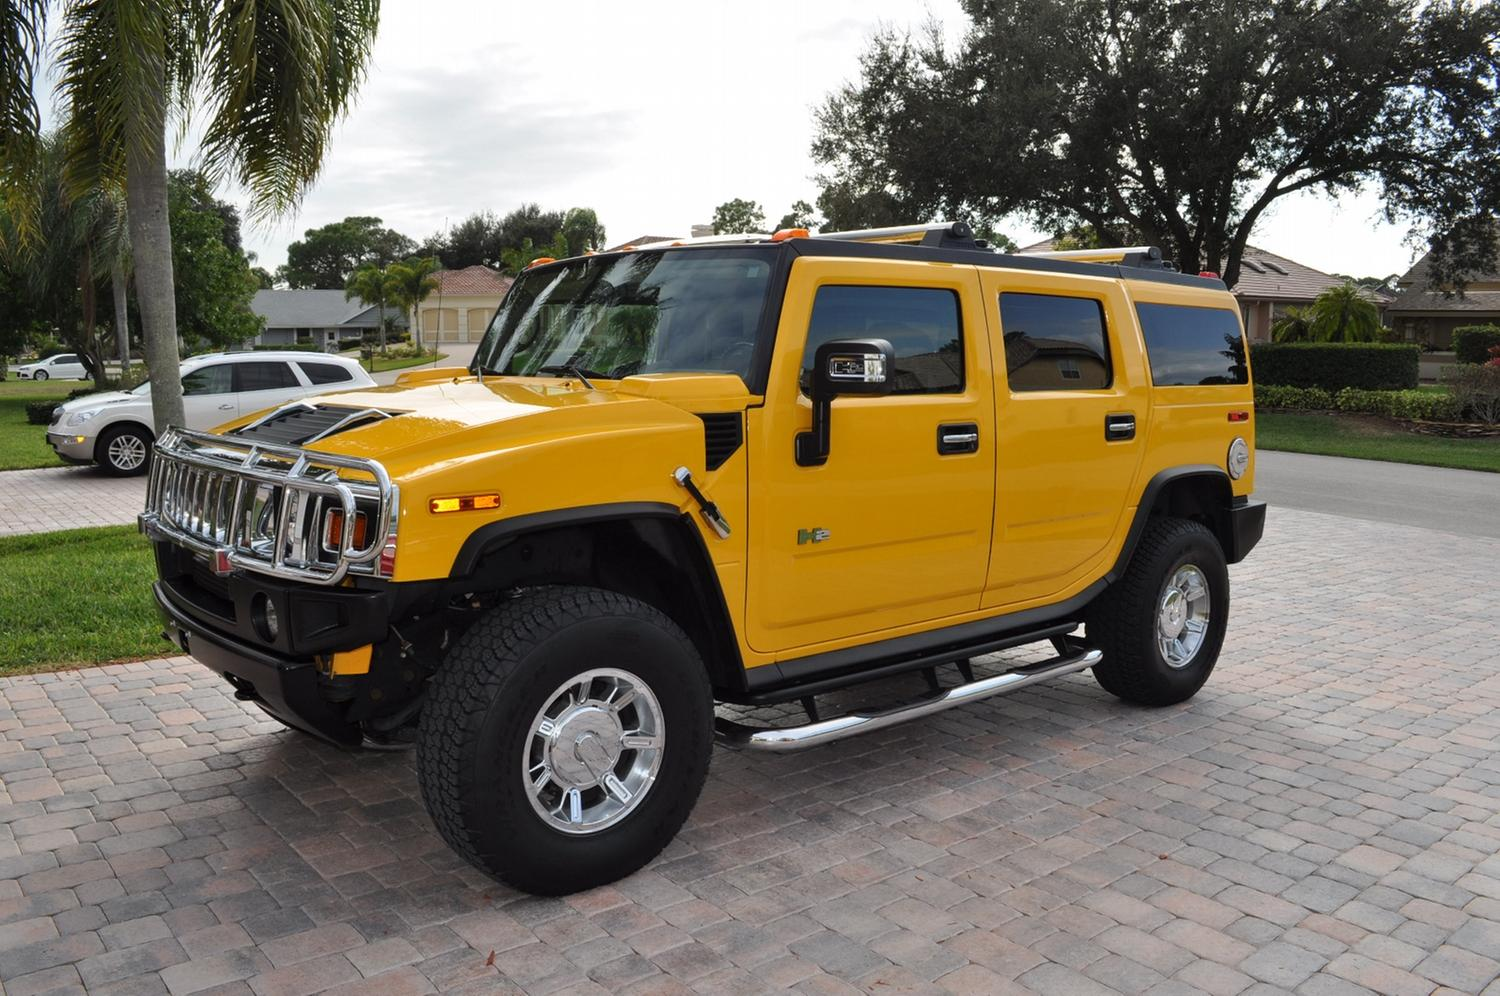 2007 Hummer H2 Wiring Diagram Library Grand Cherokee Engine Image 1 Luxury Suv